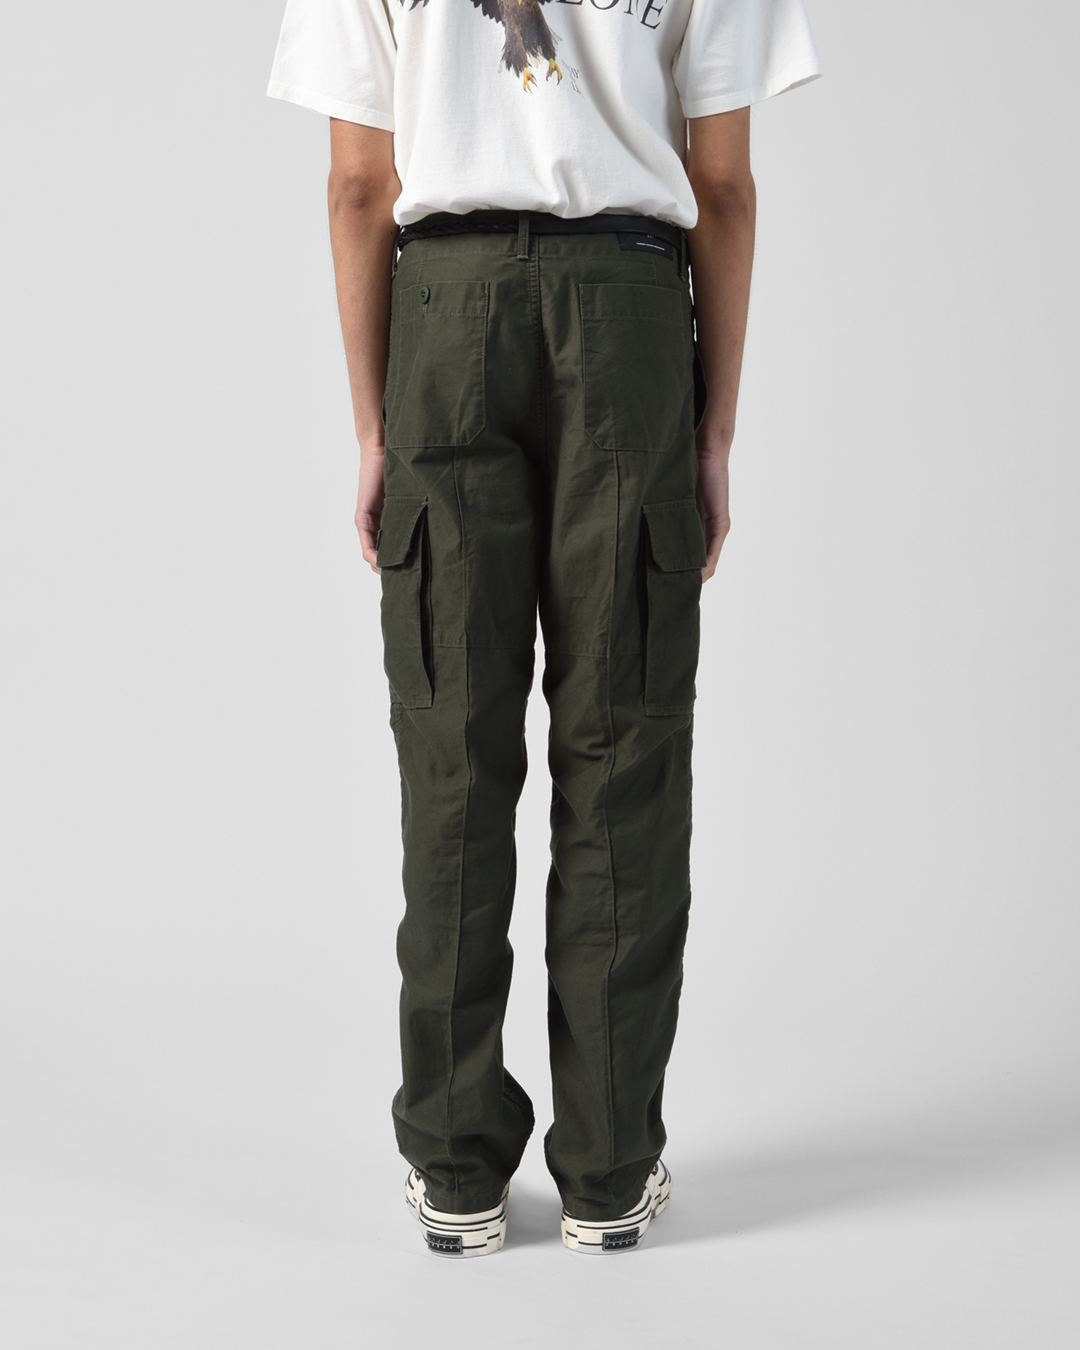 CARGO TROUSERS 詳細画像 Olive 10